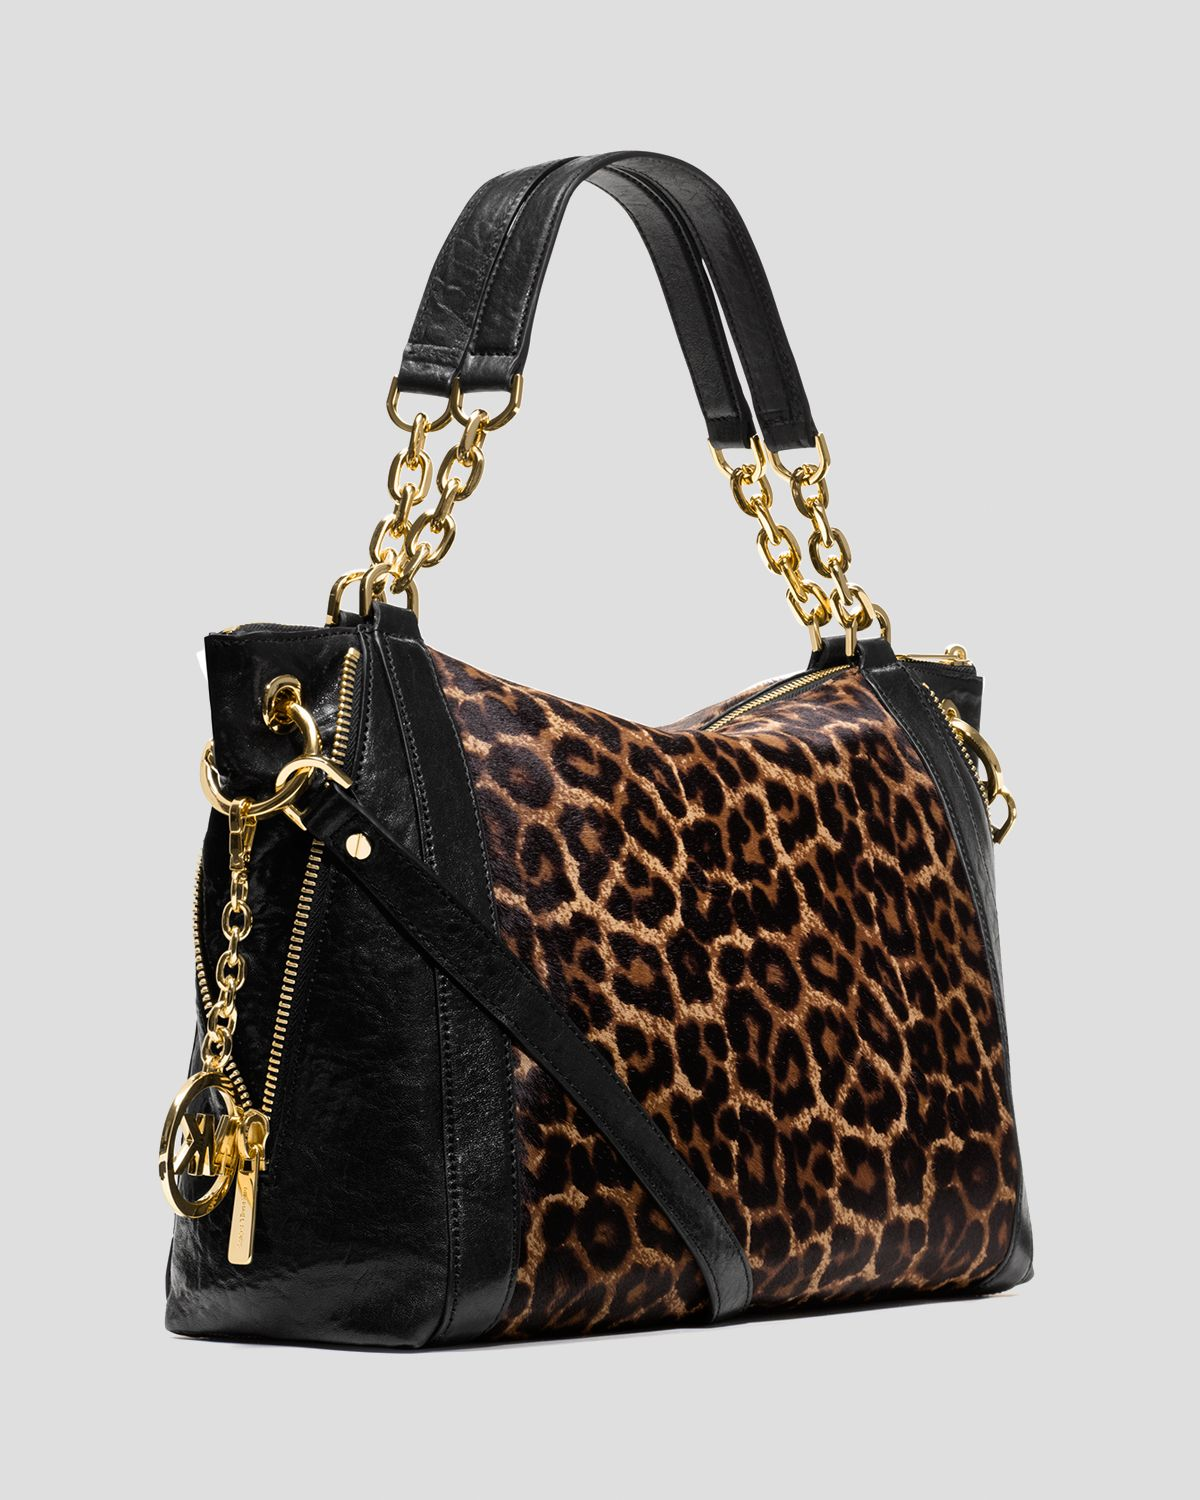 02f31b279528 Michael Kors Cheetah Handbag - Foto Handbag All Collections ...